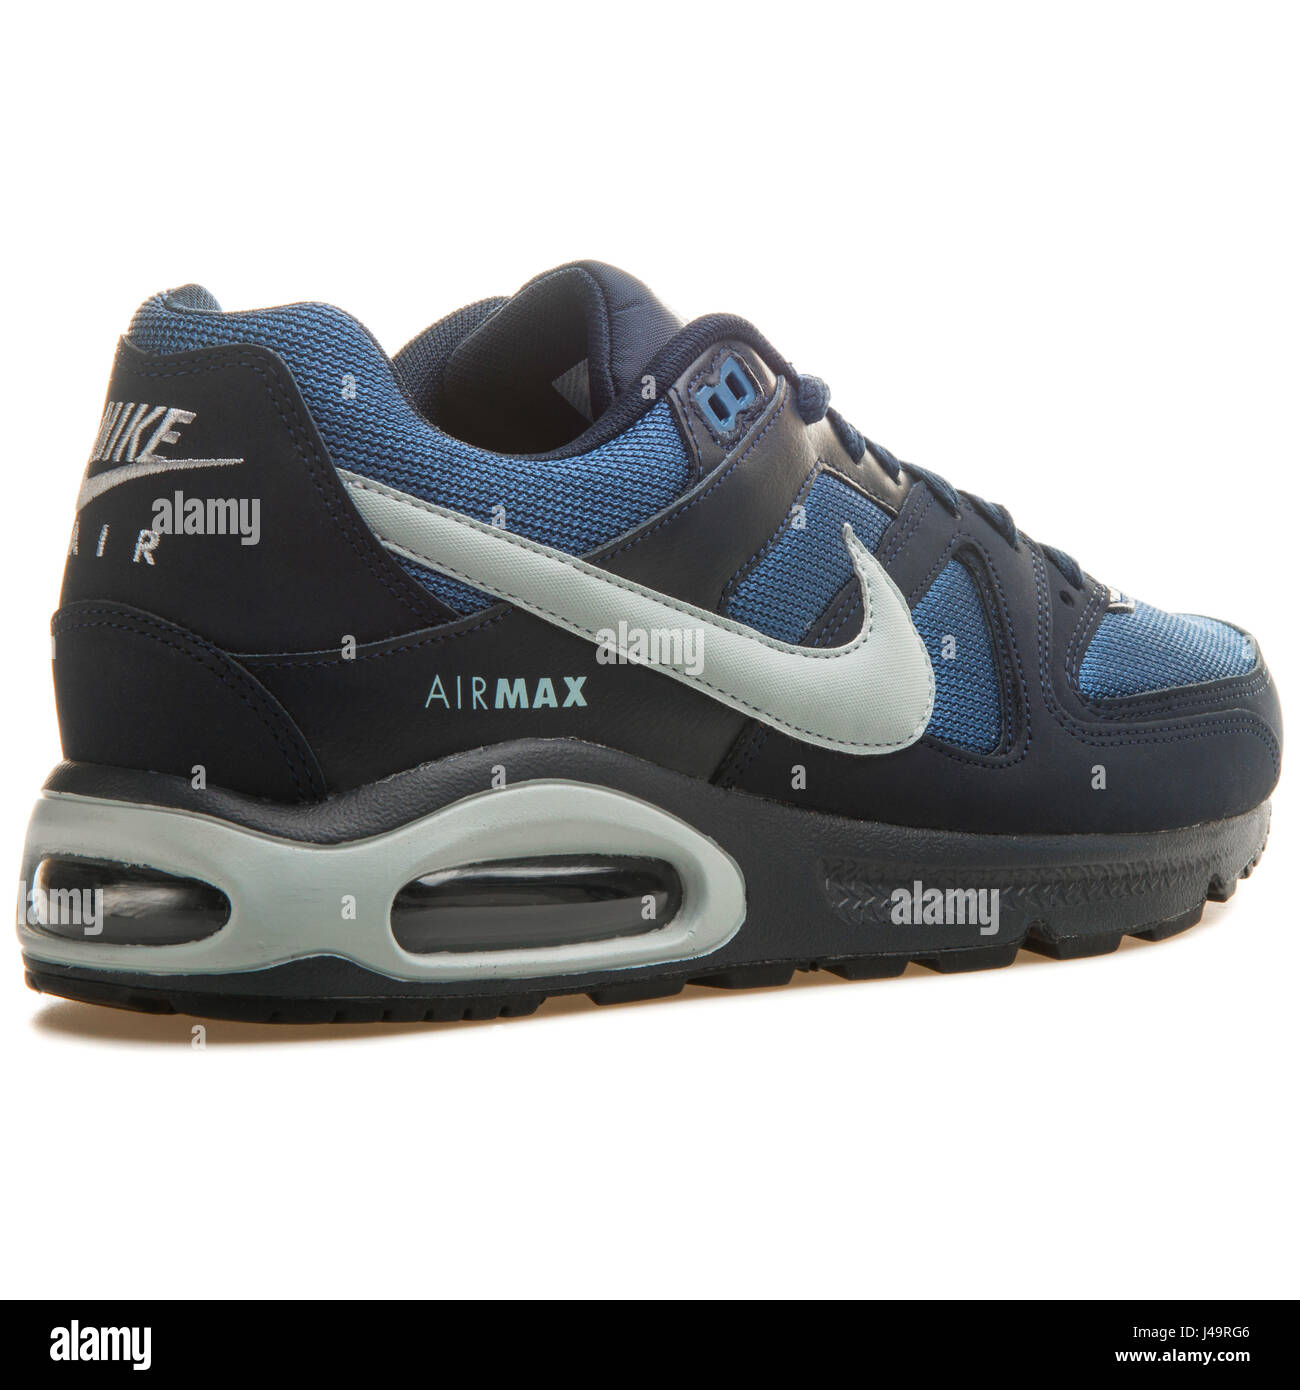 Nike Air Max Command Blue - 629993-400 Stock Photo: 140357622 - Alamy